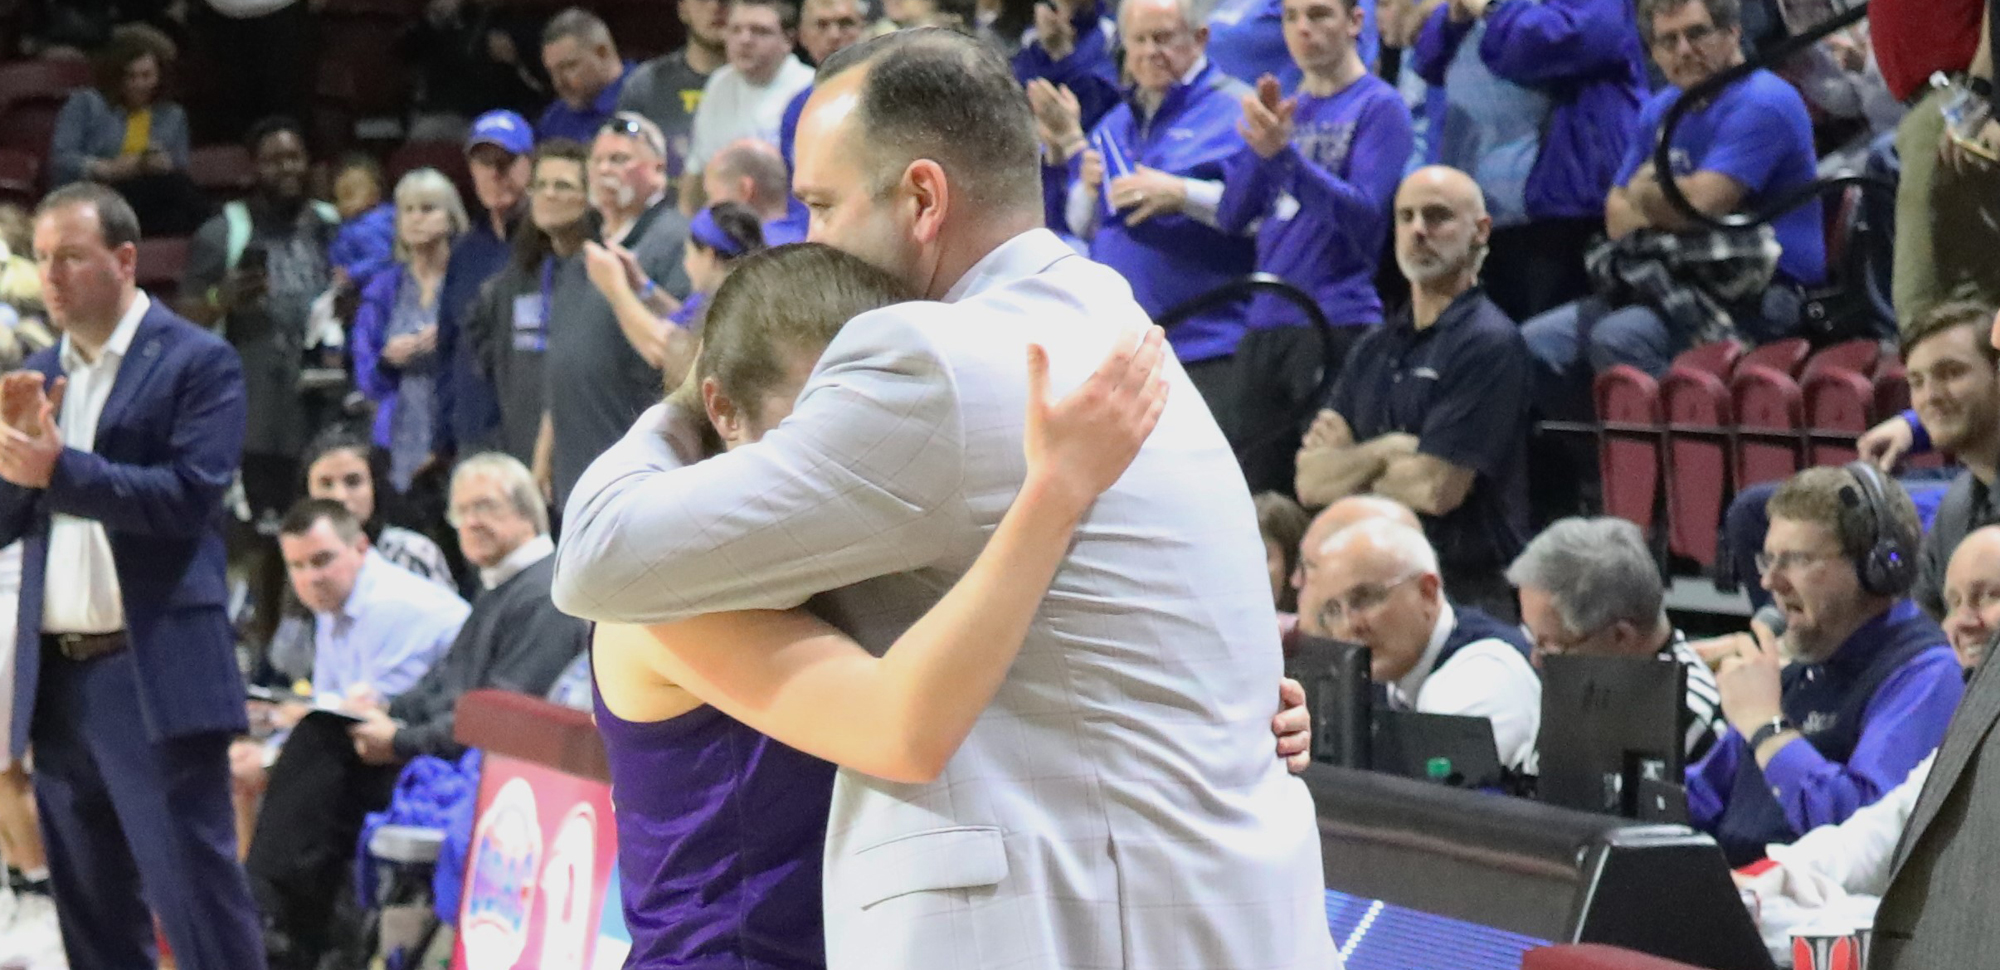 Head coach Trevor Woodruff hugs senior Bridgette Mann as Mann is taken out of the game in Scranton's 69-56 defeat to Thomas More in the 2019 NCAA Division III National Semifinals on Friday night in Salem, Va. © Photo by Timothy R. Dougherty / doubleeaglephotography.com